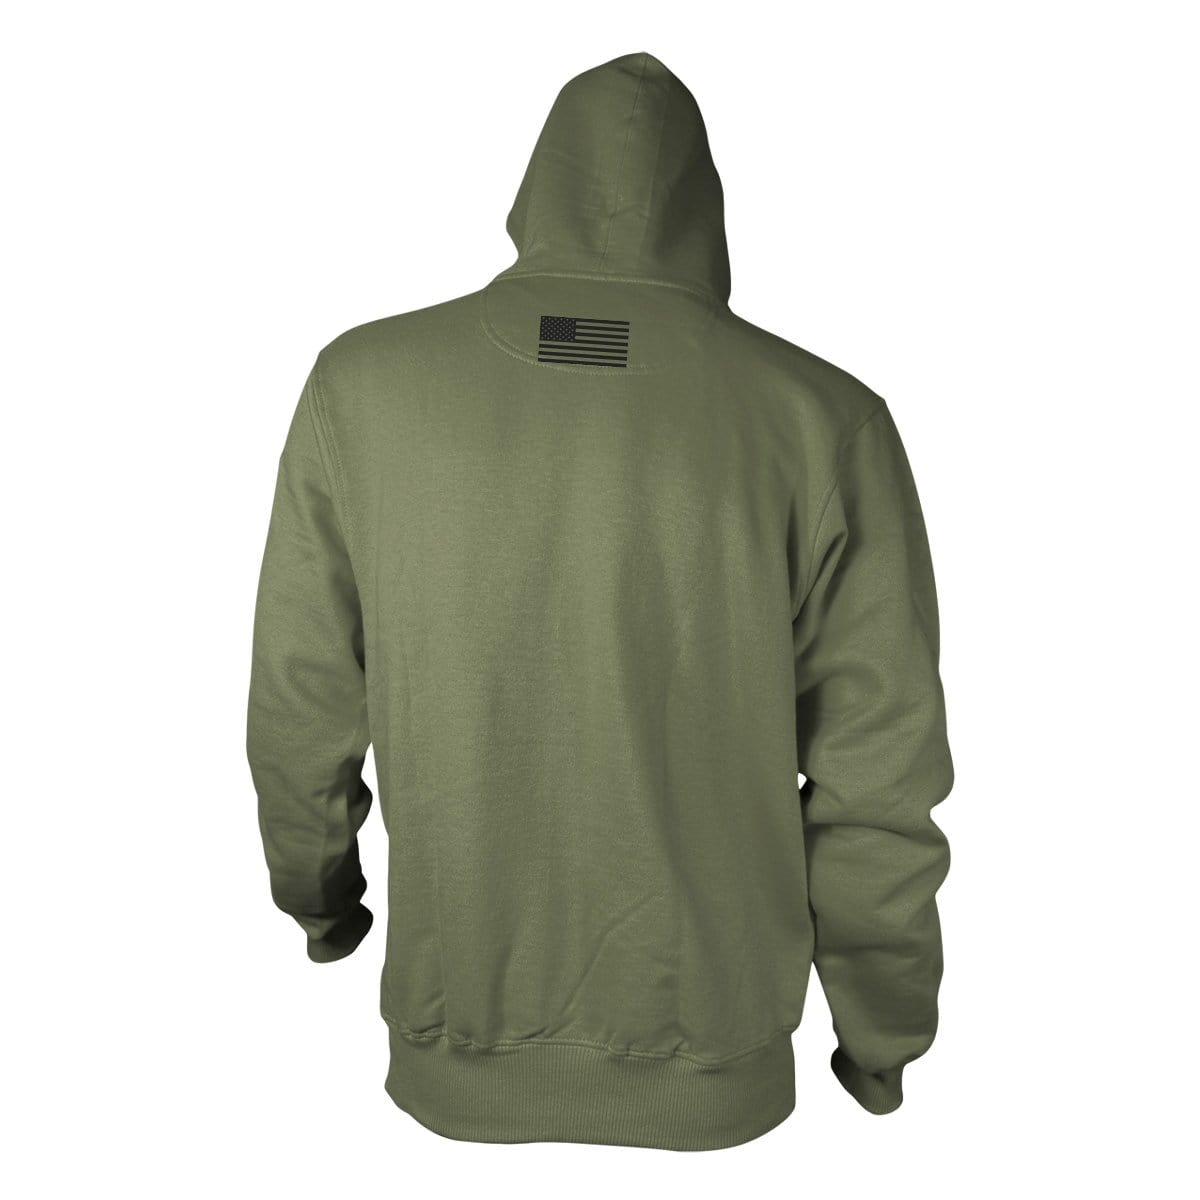 Dog of War Hoodie -  - Hoodies - Pipe Hitters Union